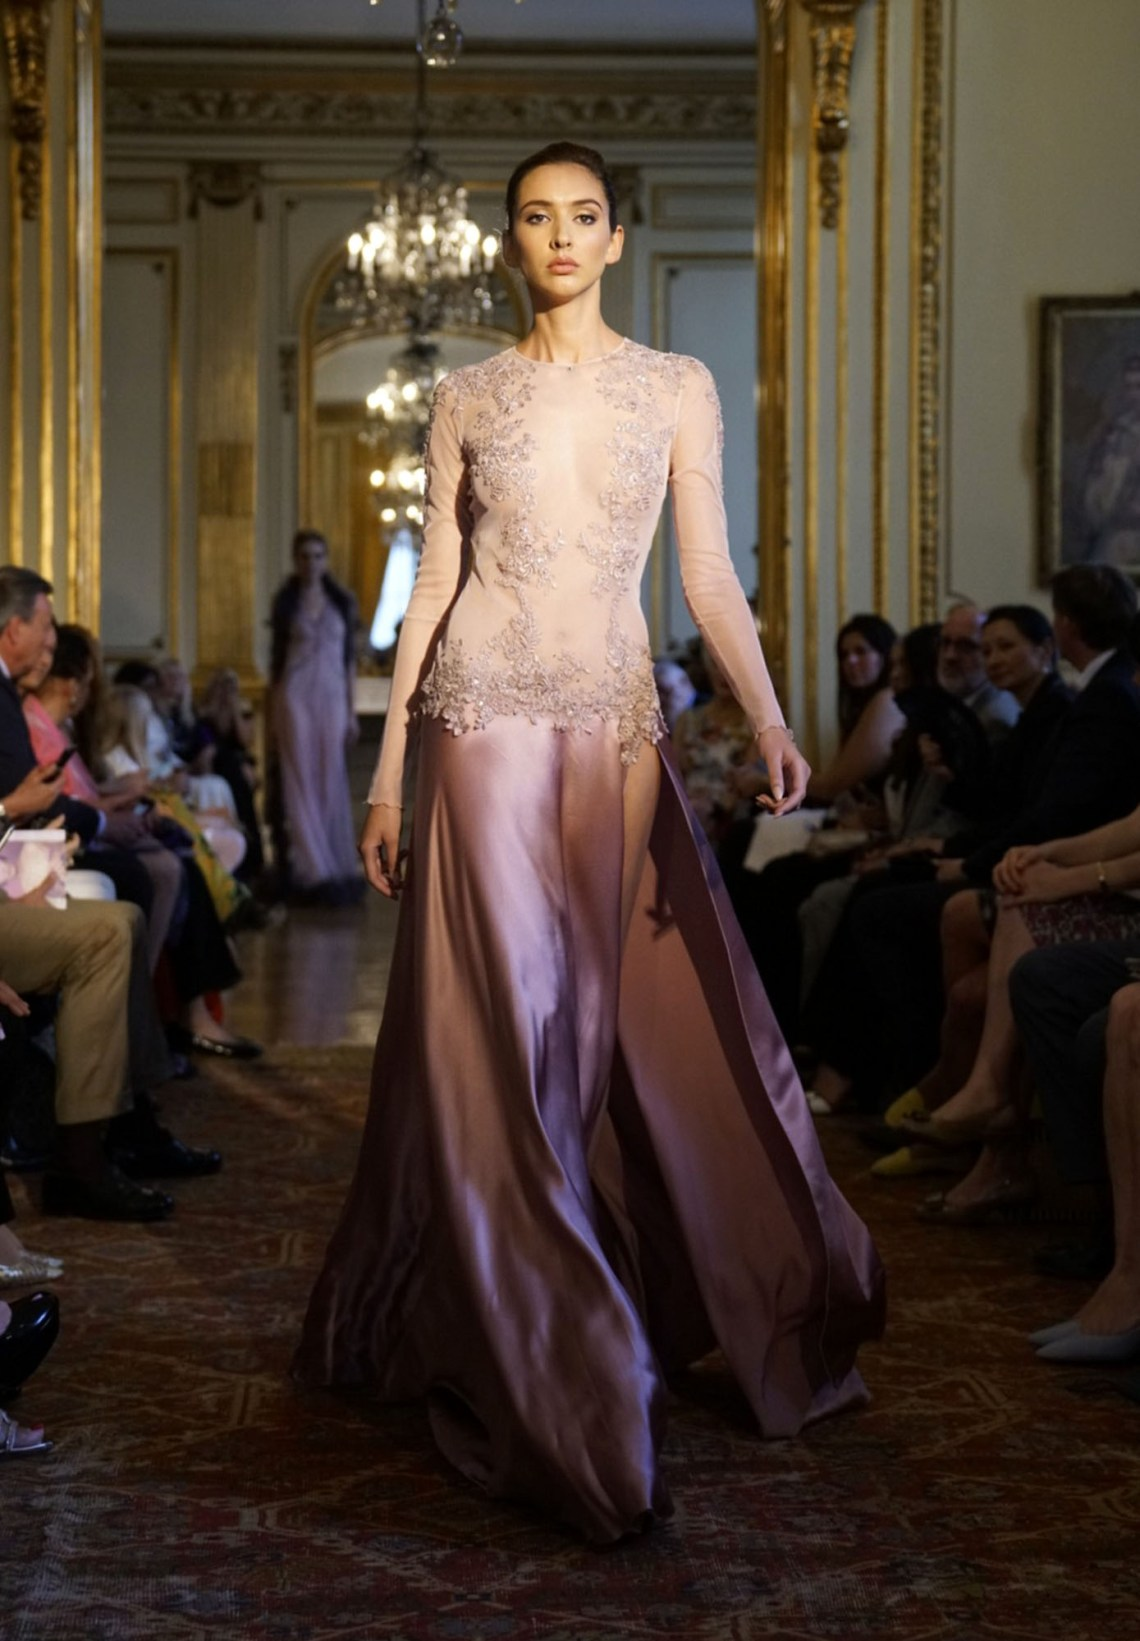 ZVONKO MARKOVIC COUTURE - Fall Winter 2016/17